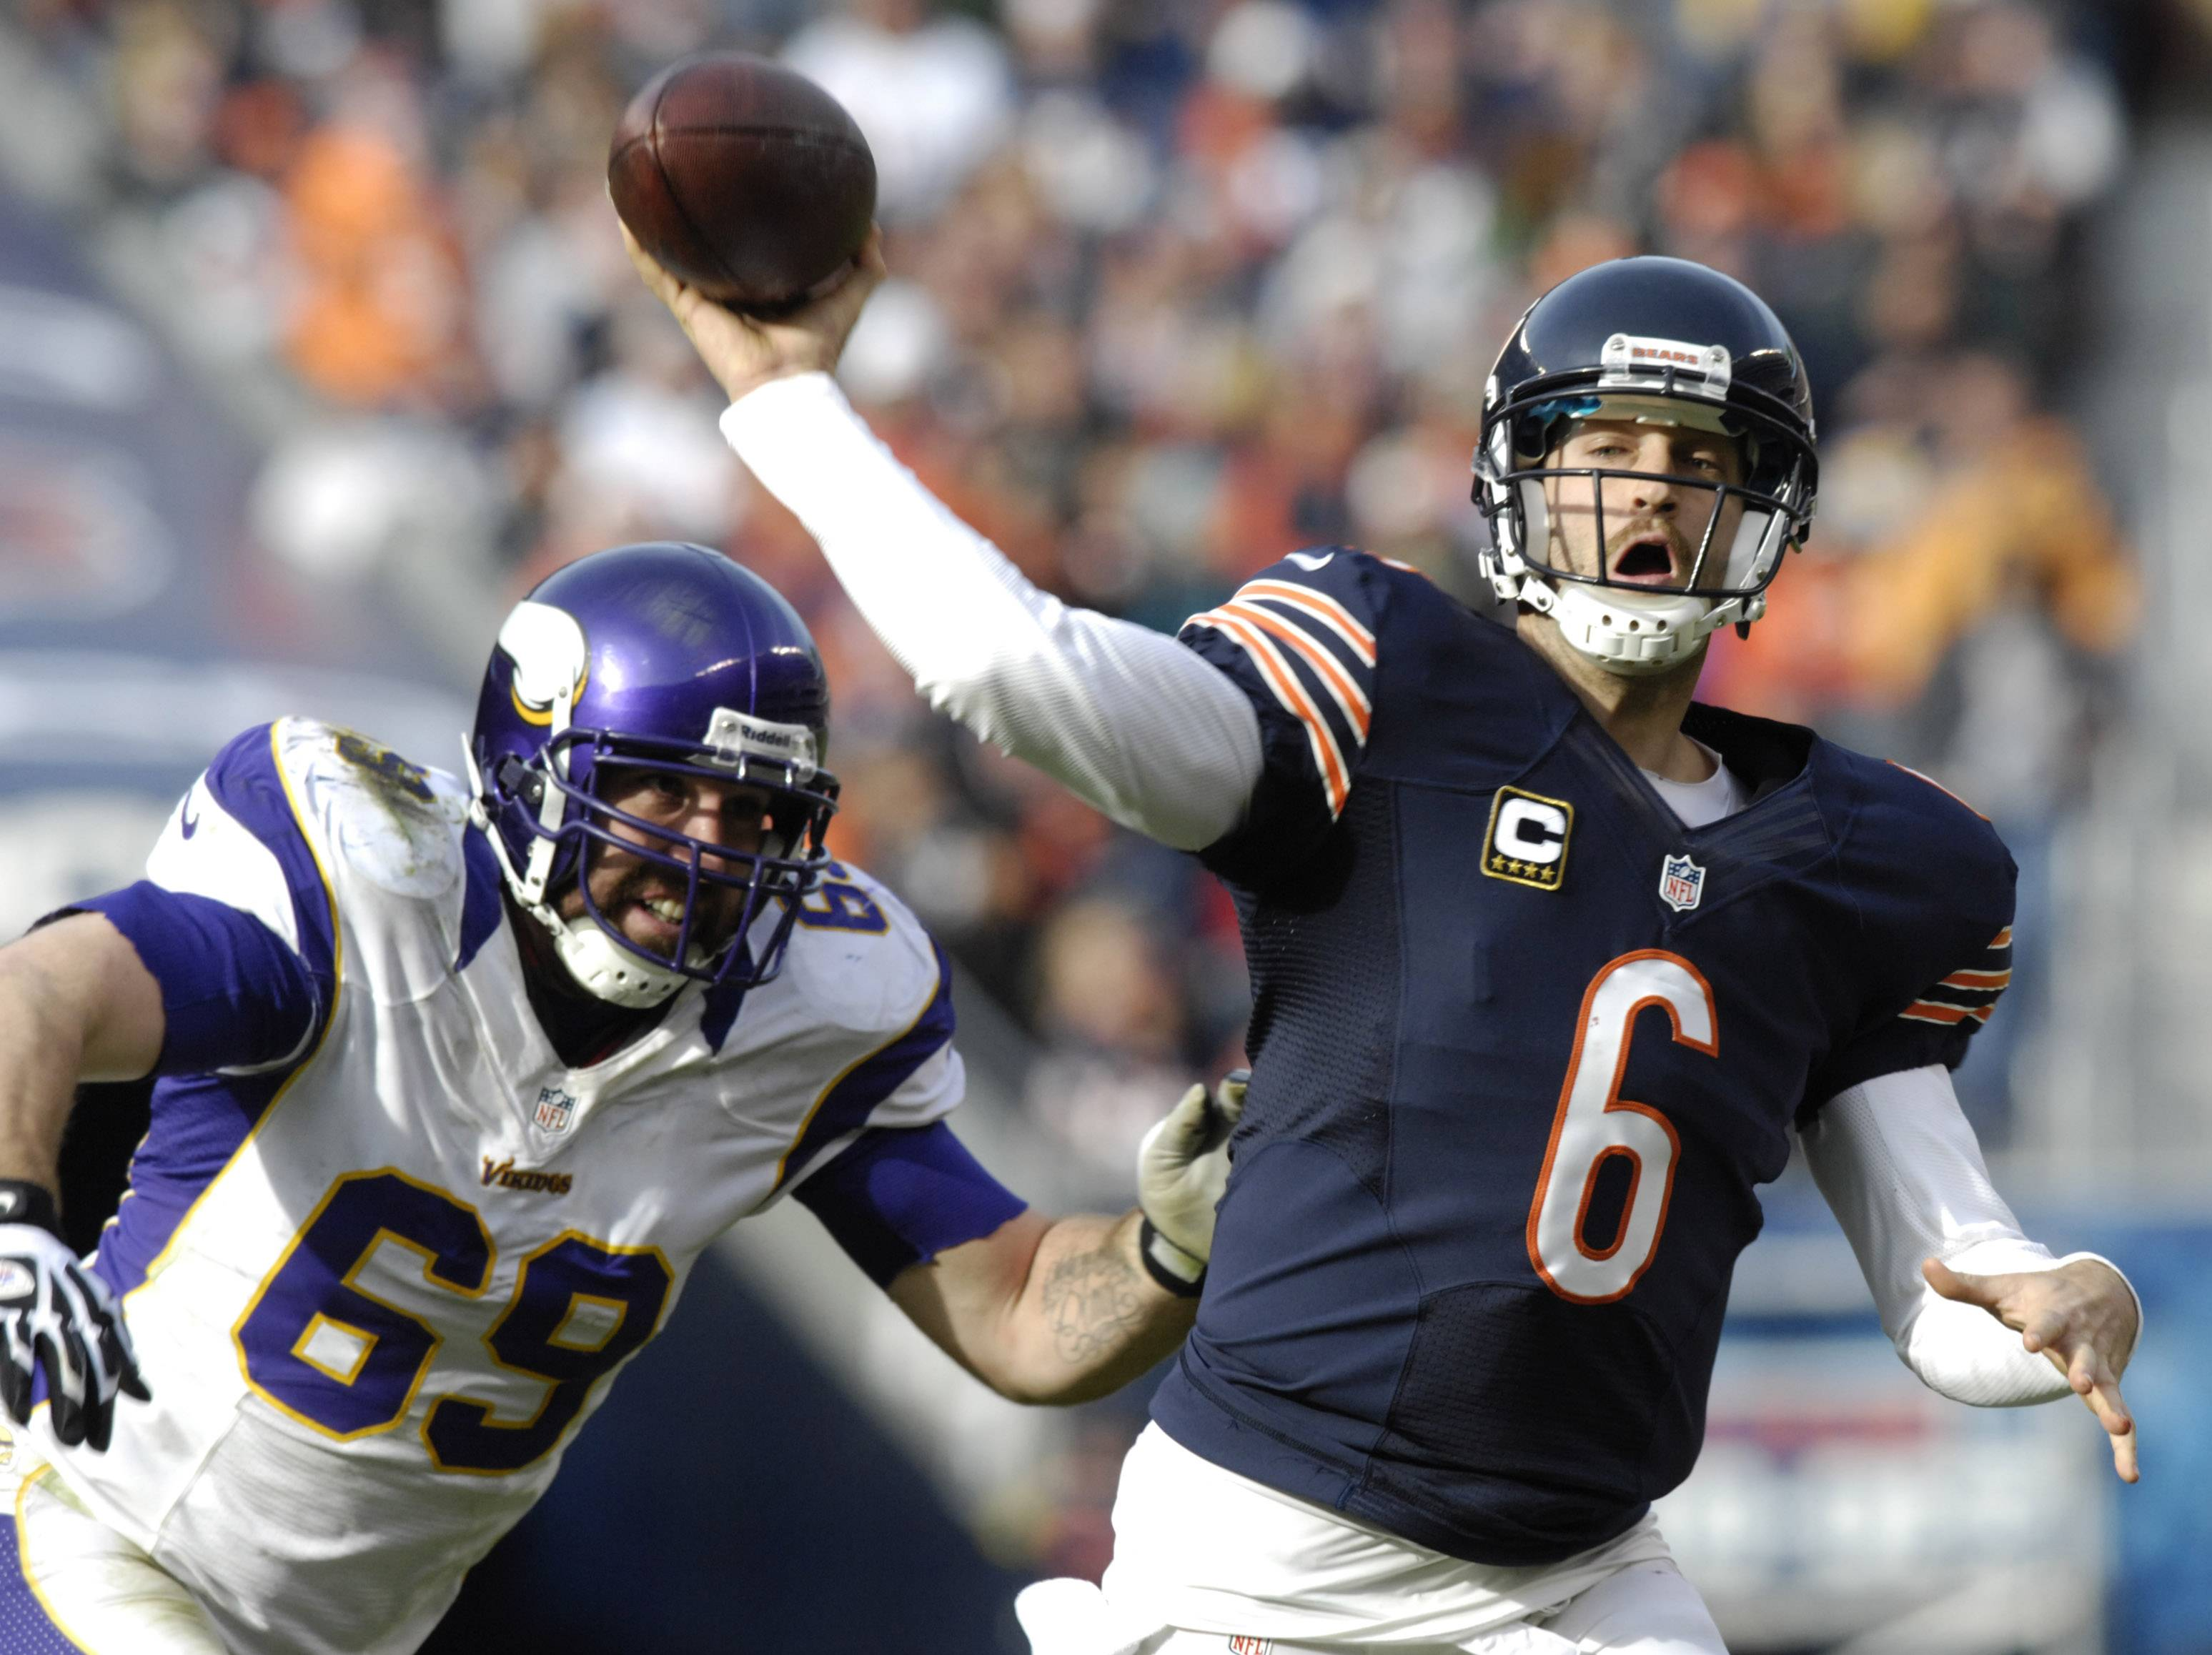 Bears quarterback Jay Cutler won't have to worry about Jared Allen chasing him down next season. Allen signed a four-year contract with the Bears on Wednesday.